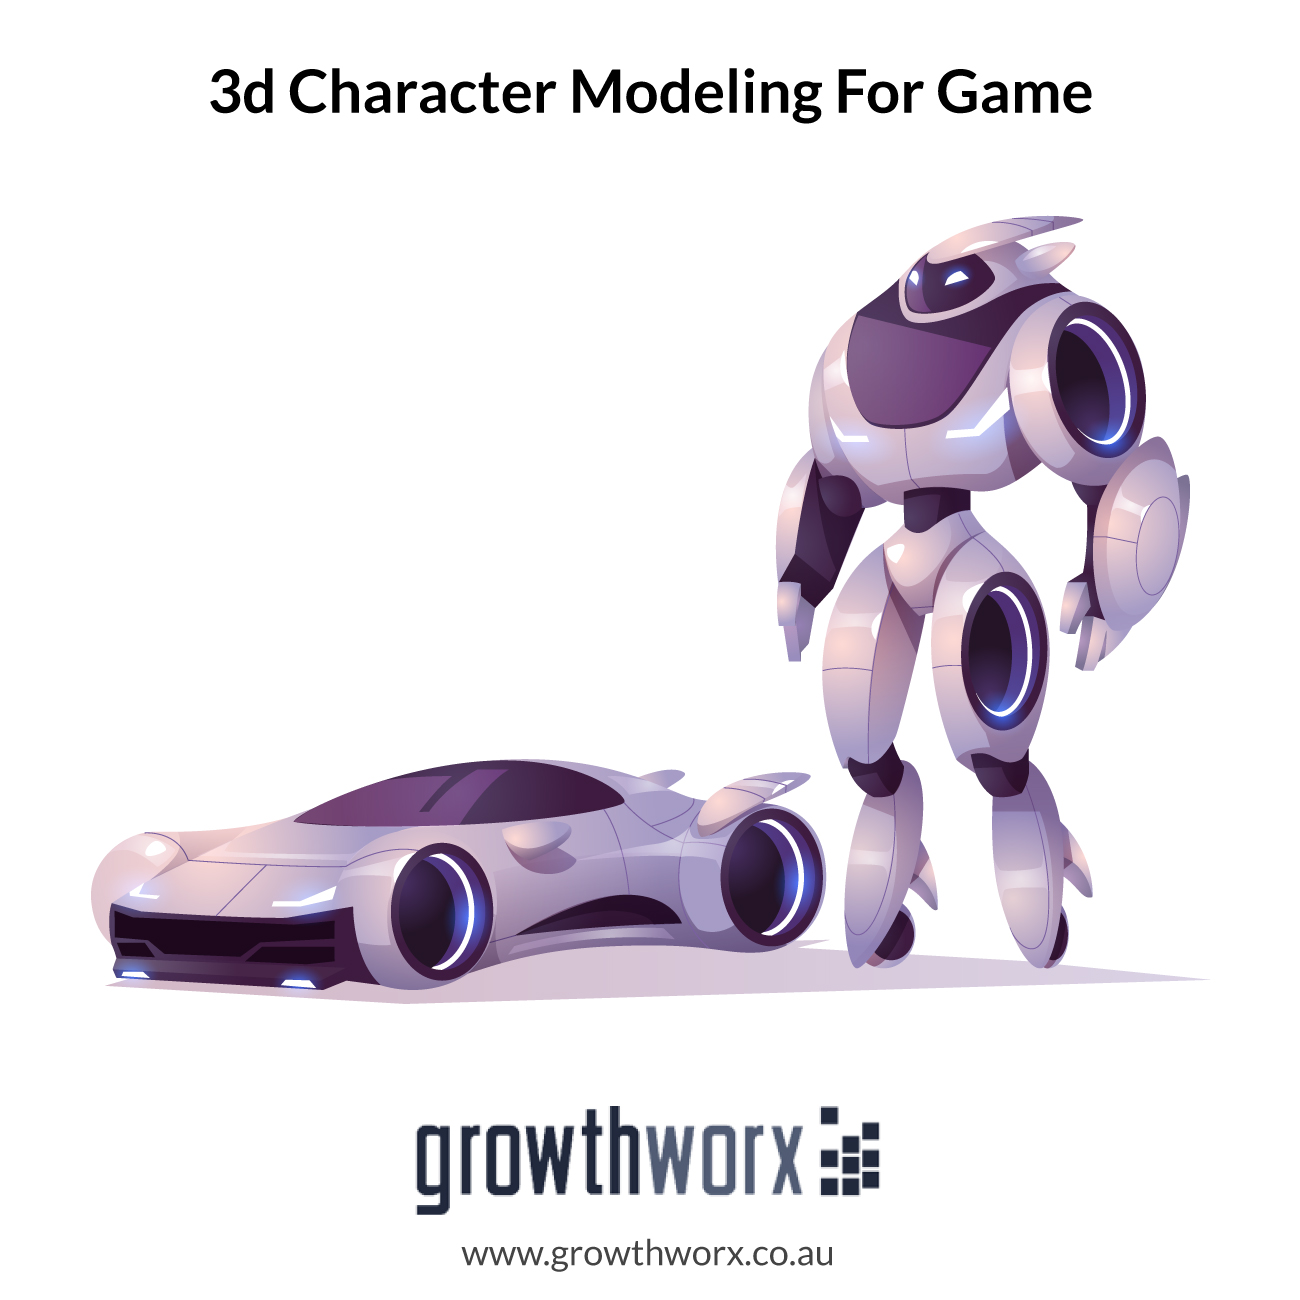 I will do 3d character modeling for game, printing or animation 1